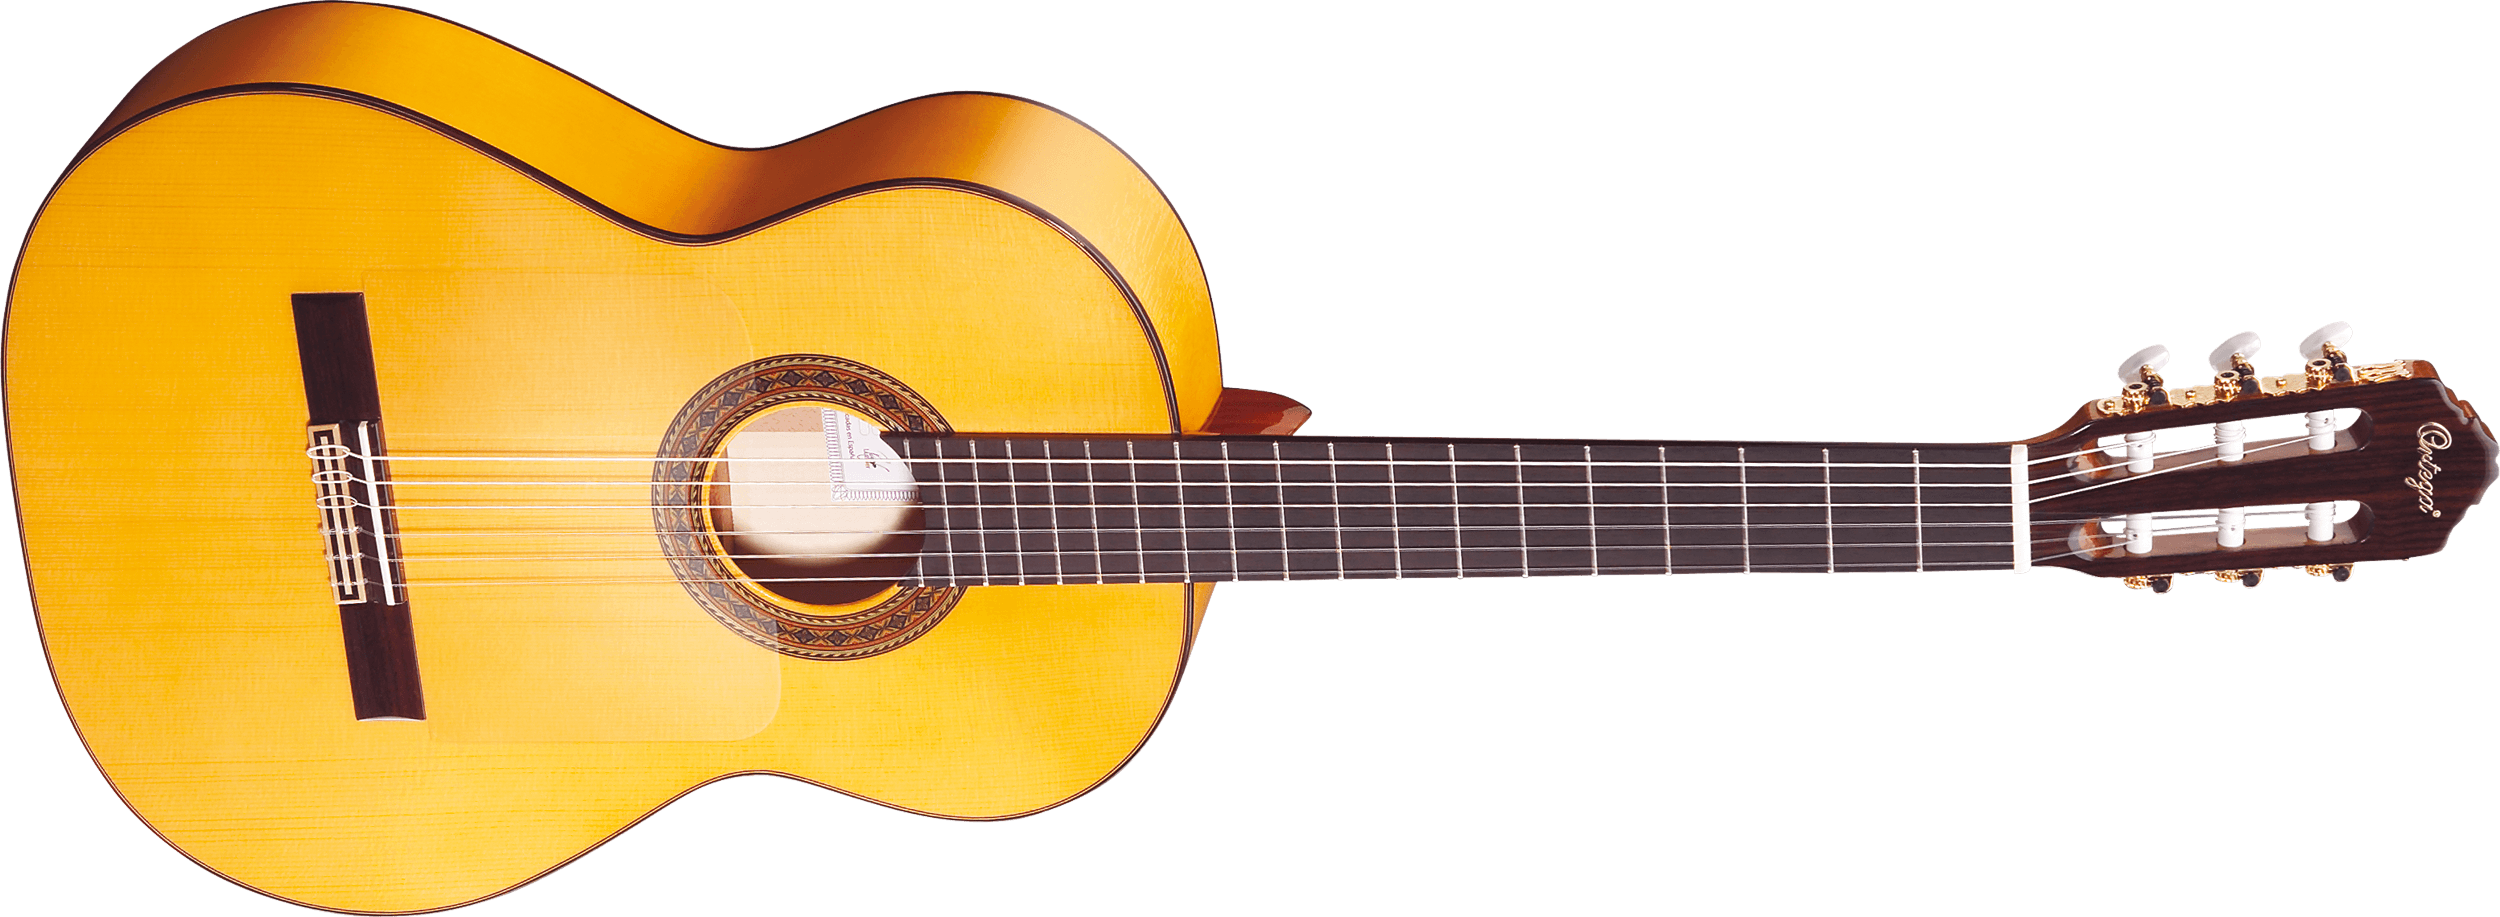 Acoustic Guitar Png Image PNG Image